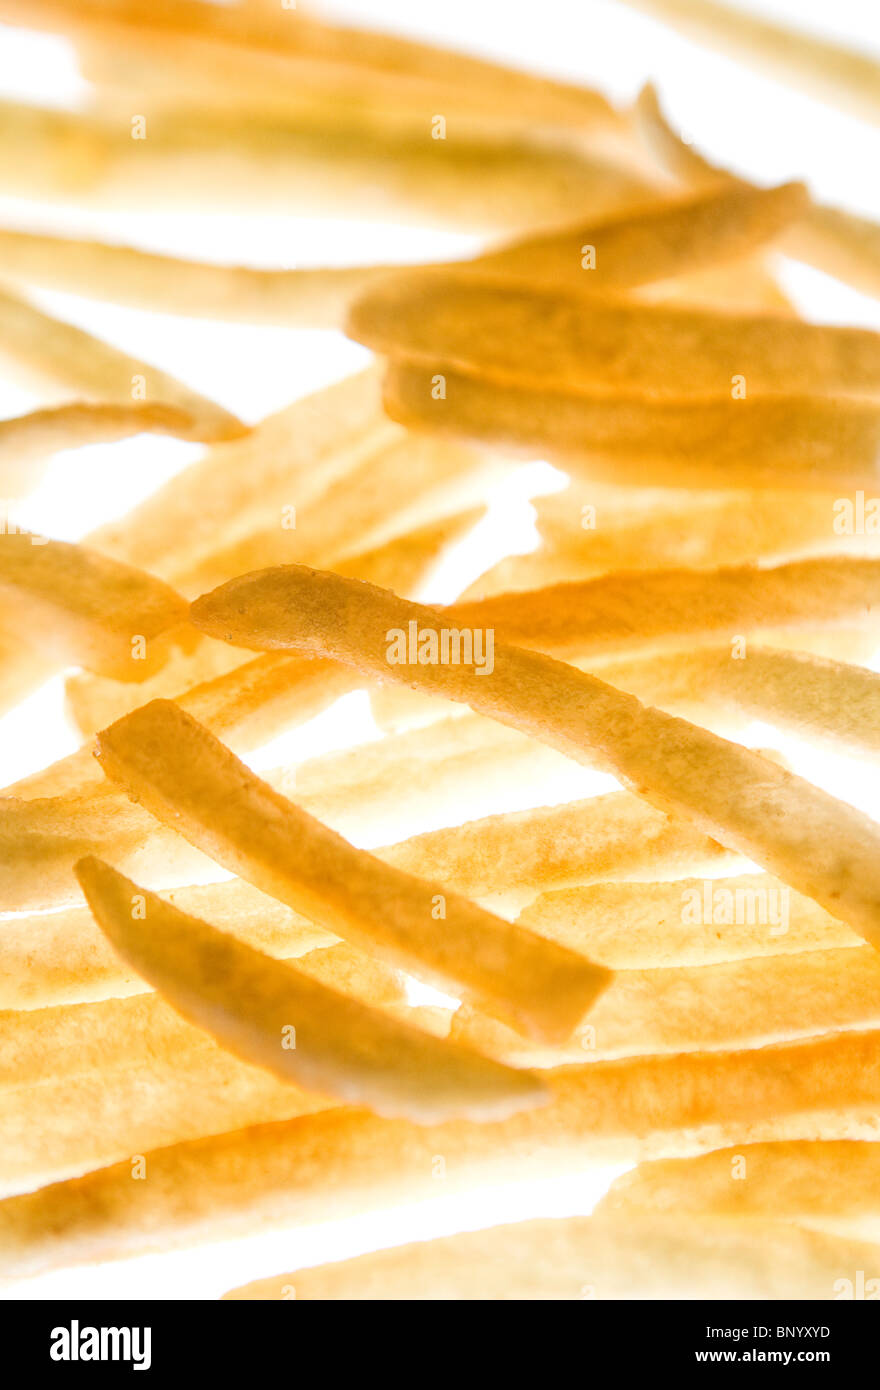 McDonald's French Fries - Stock Image